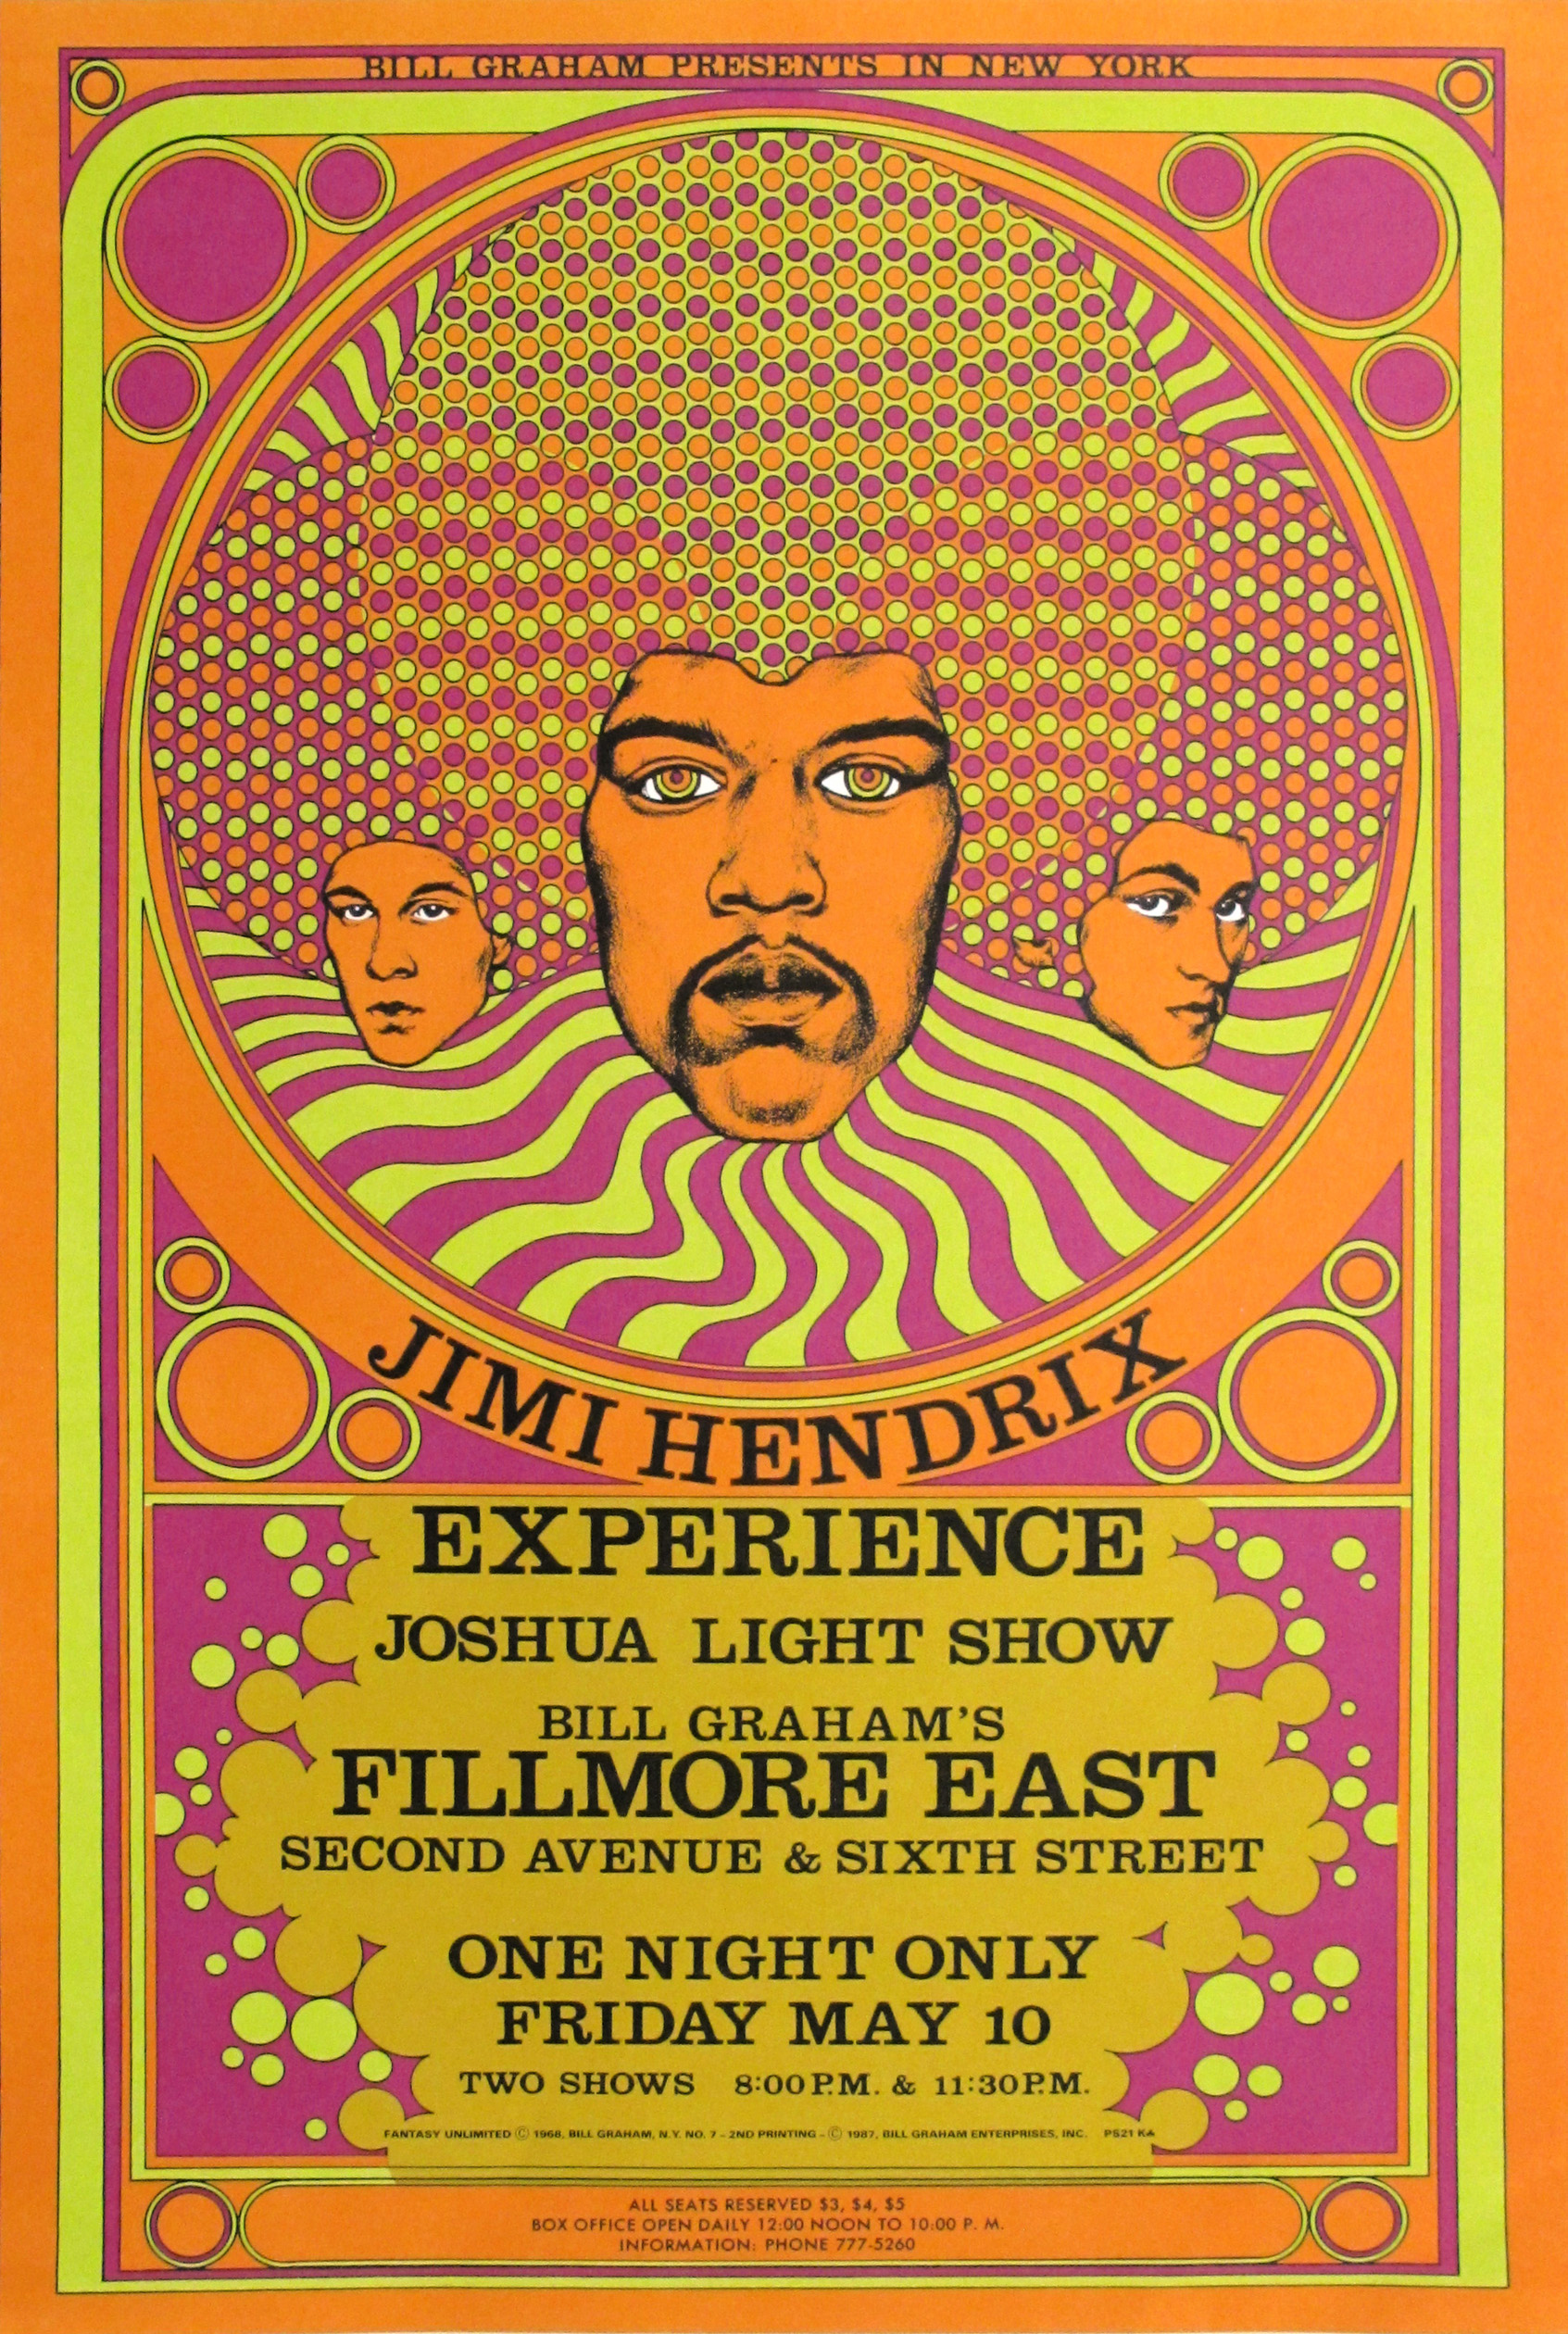 jimi hendrix experience concert poster limited runs